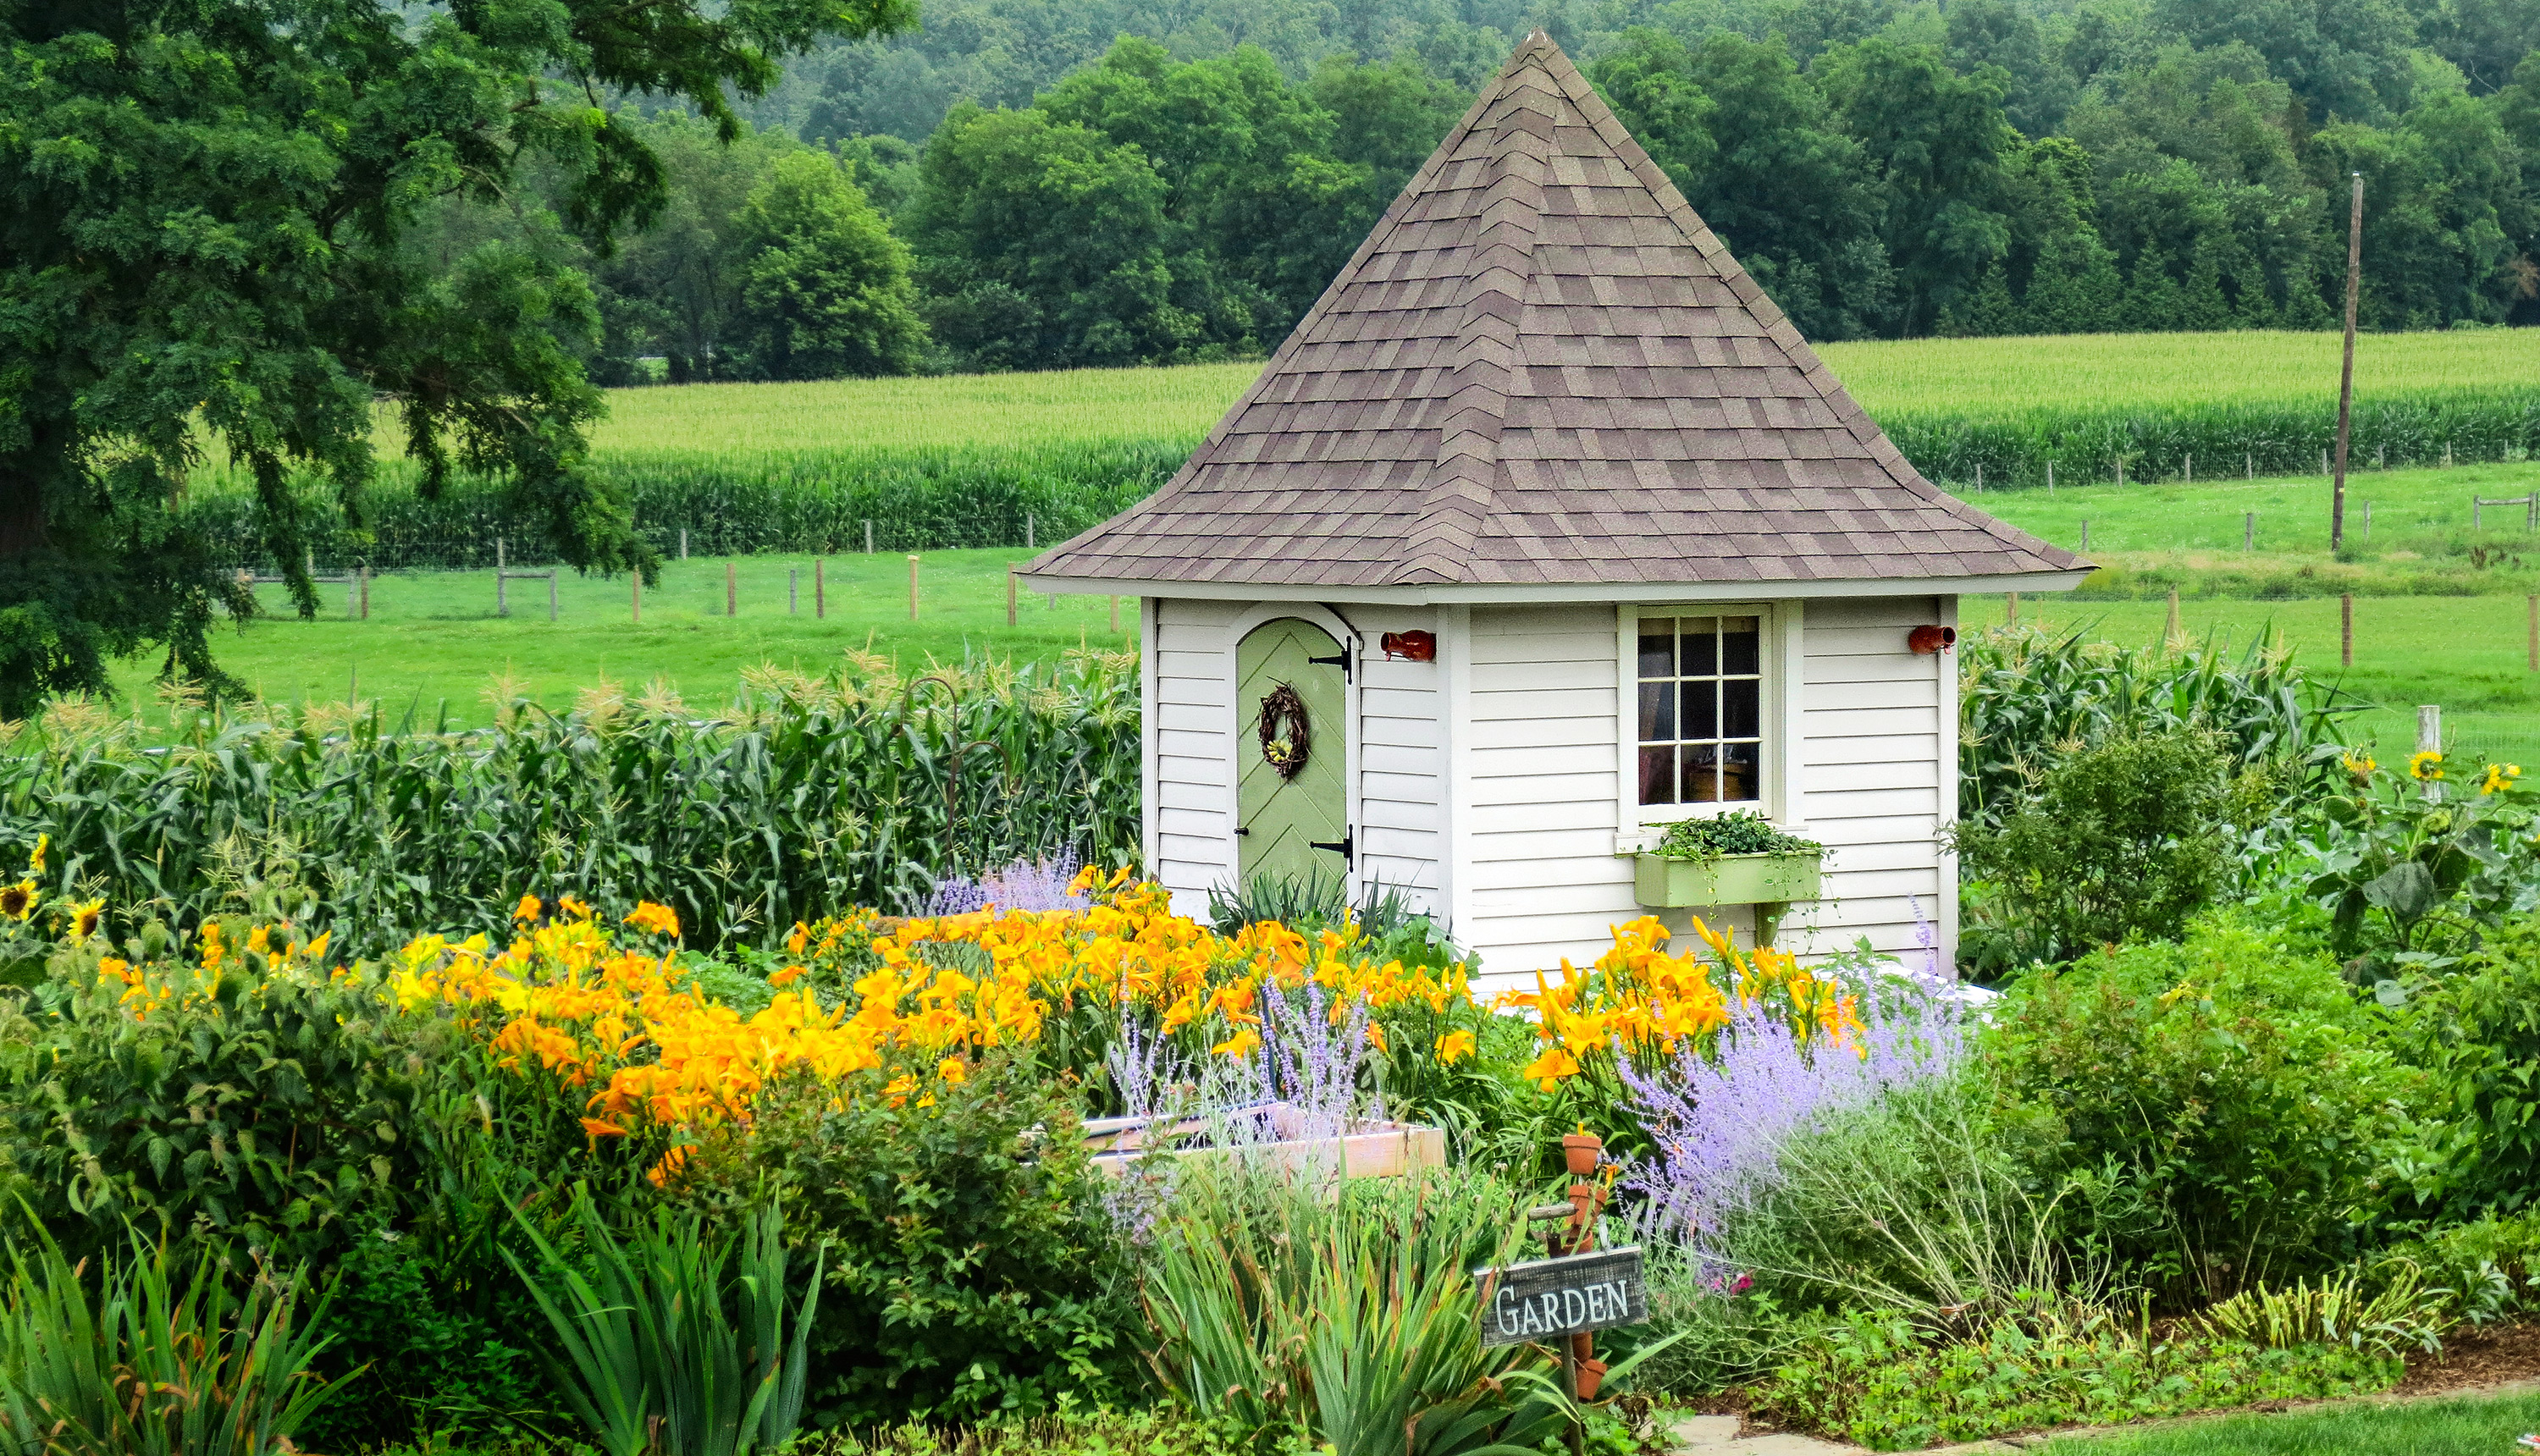 Pointed Roof Garden Shed